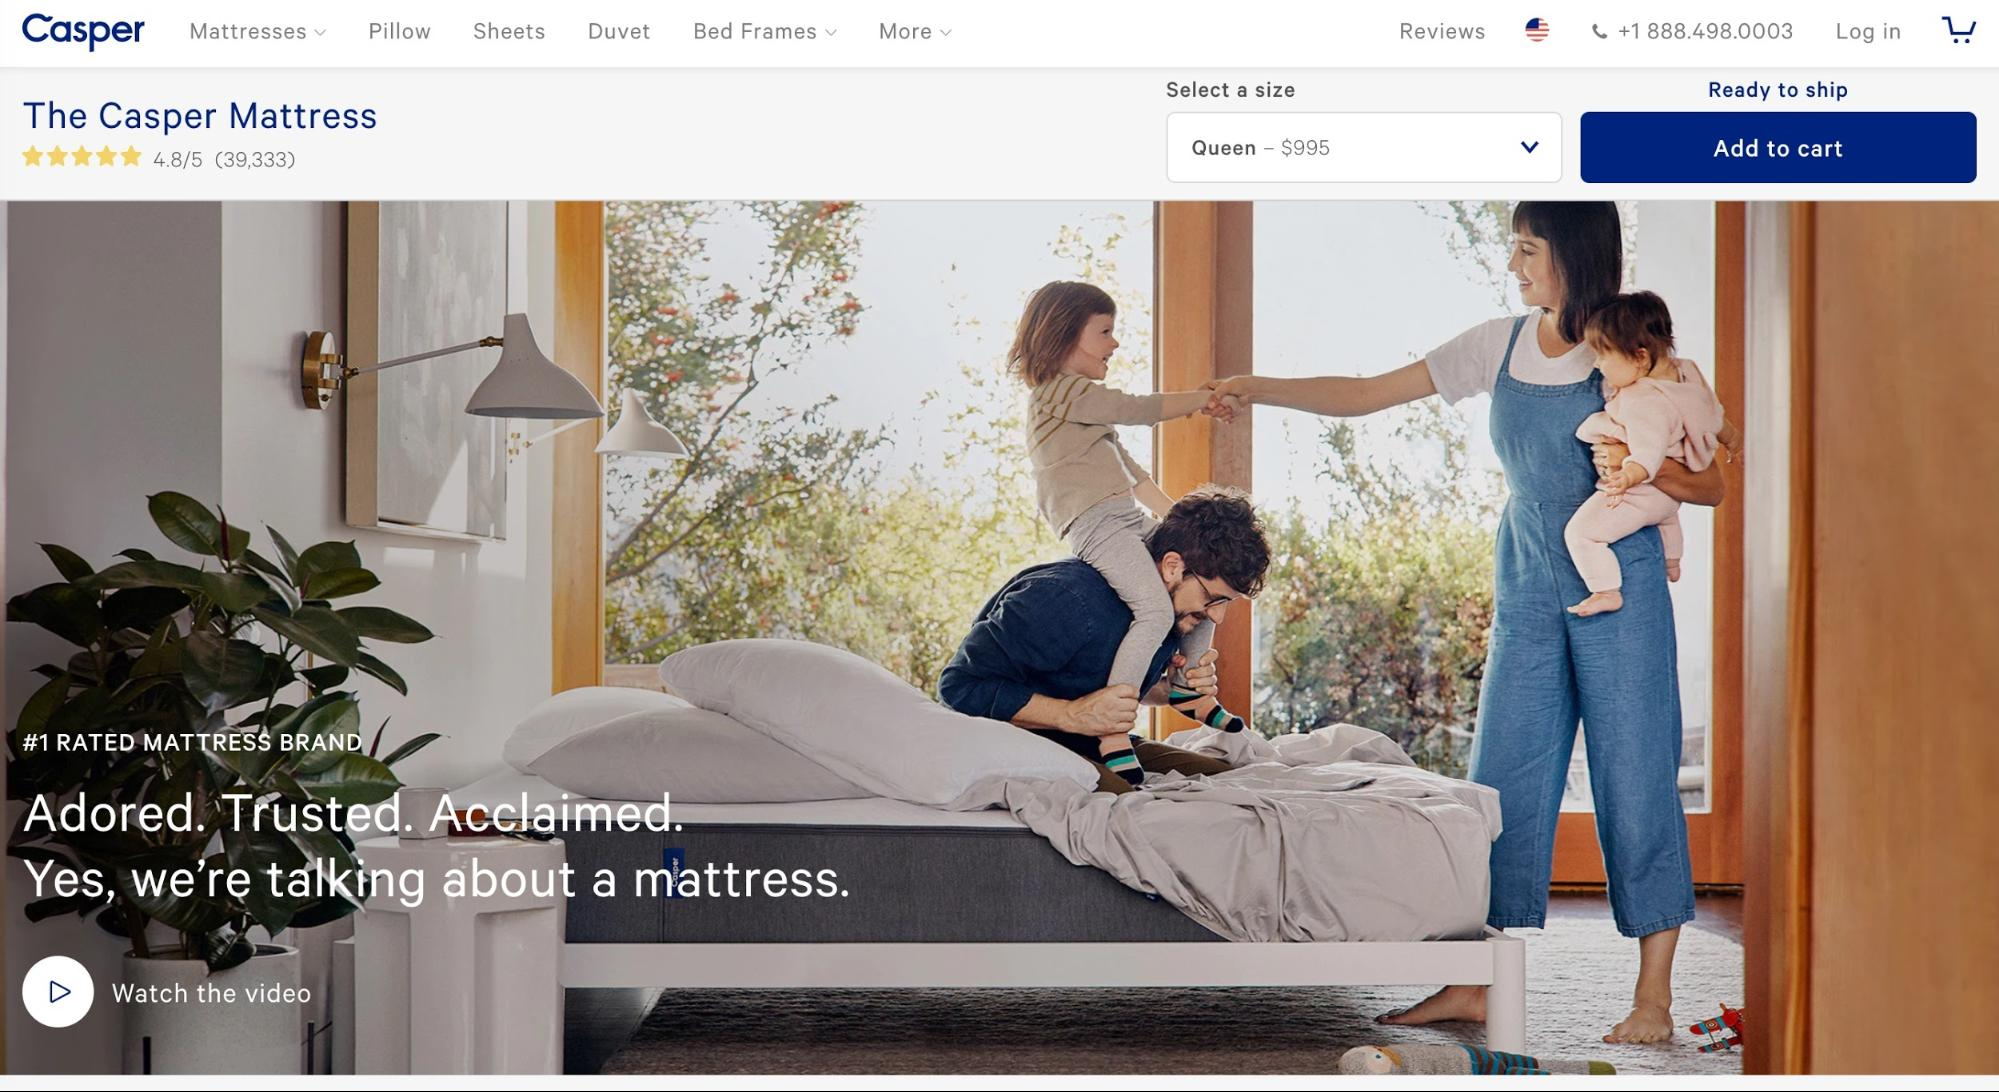 Screenshot showing casper mattress